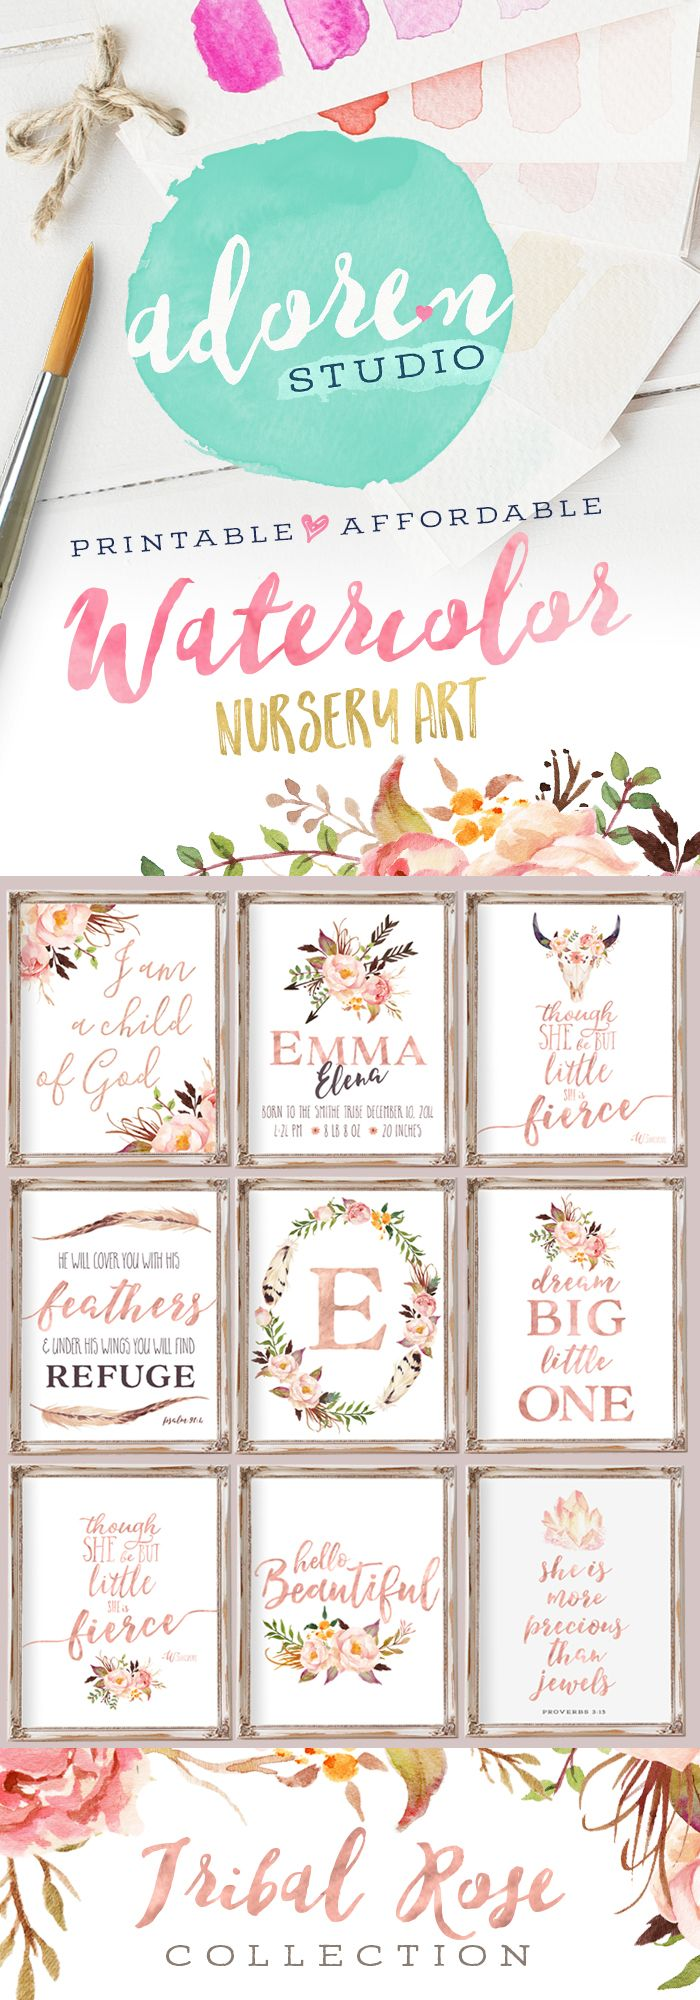 best nursery wall quotes images on pinterest baby room nursery